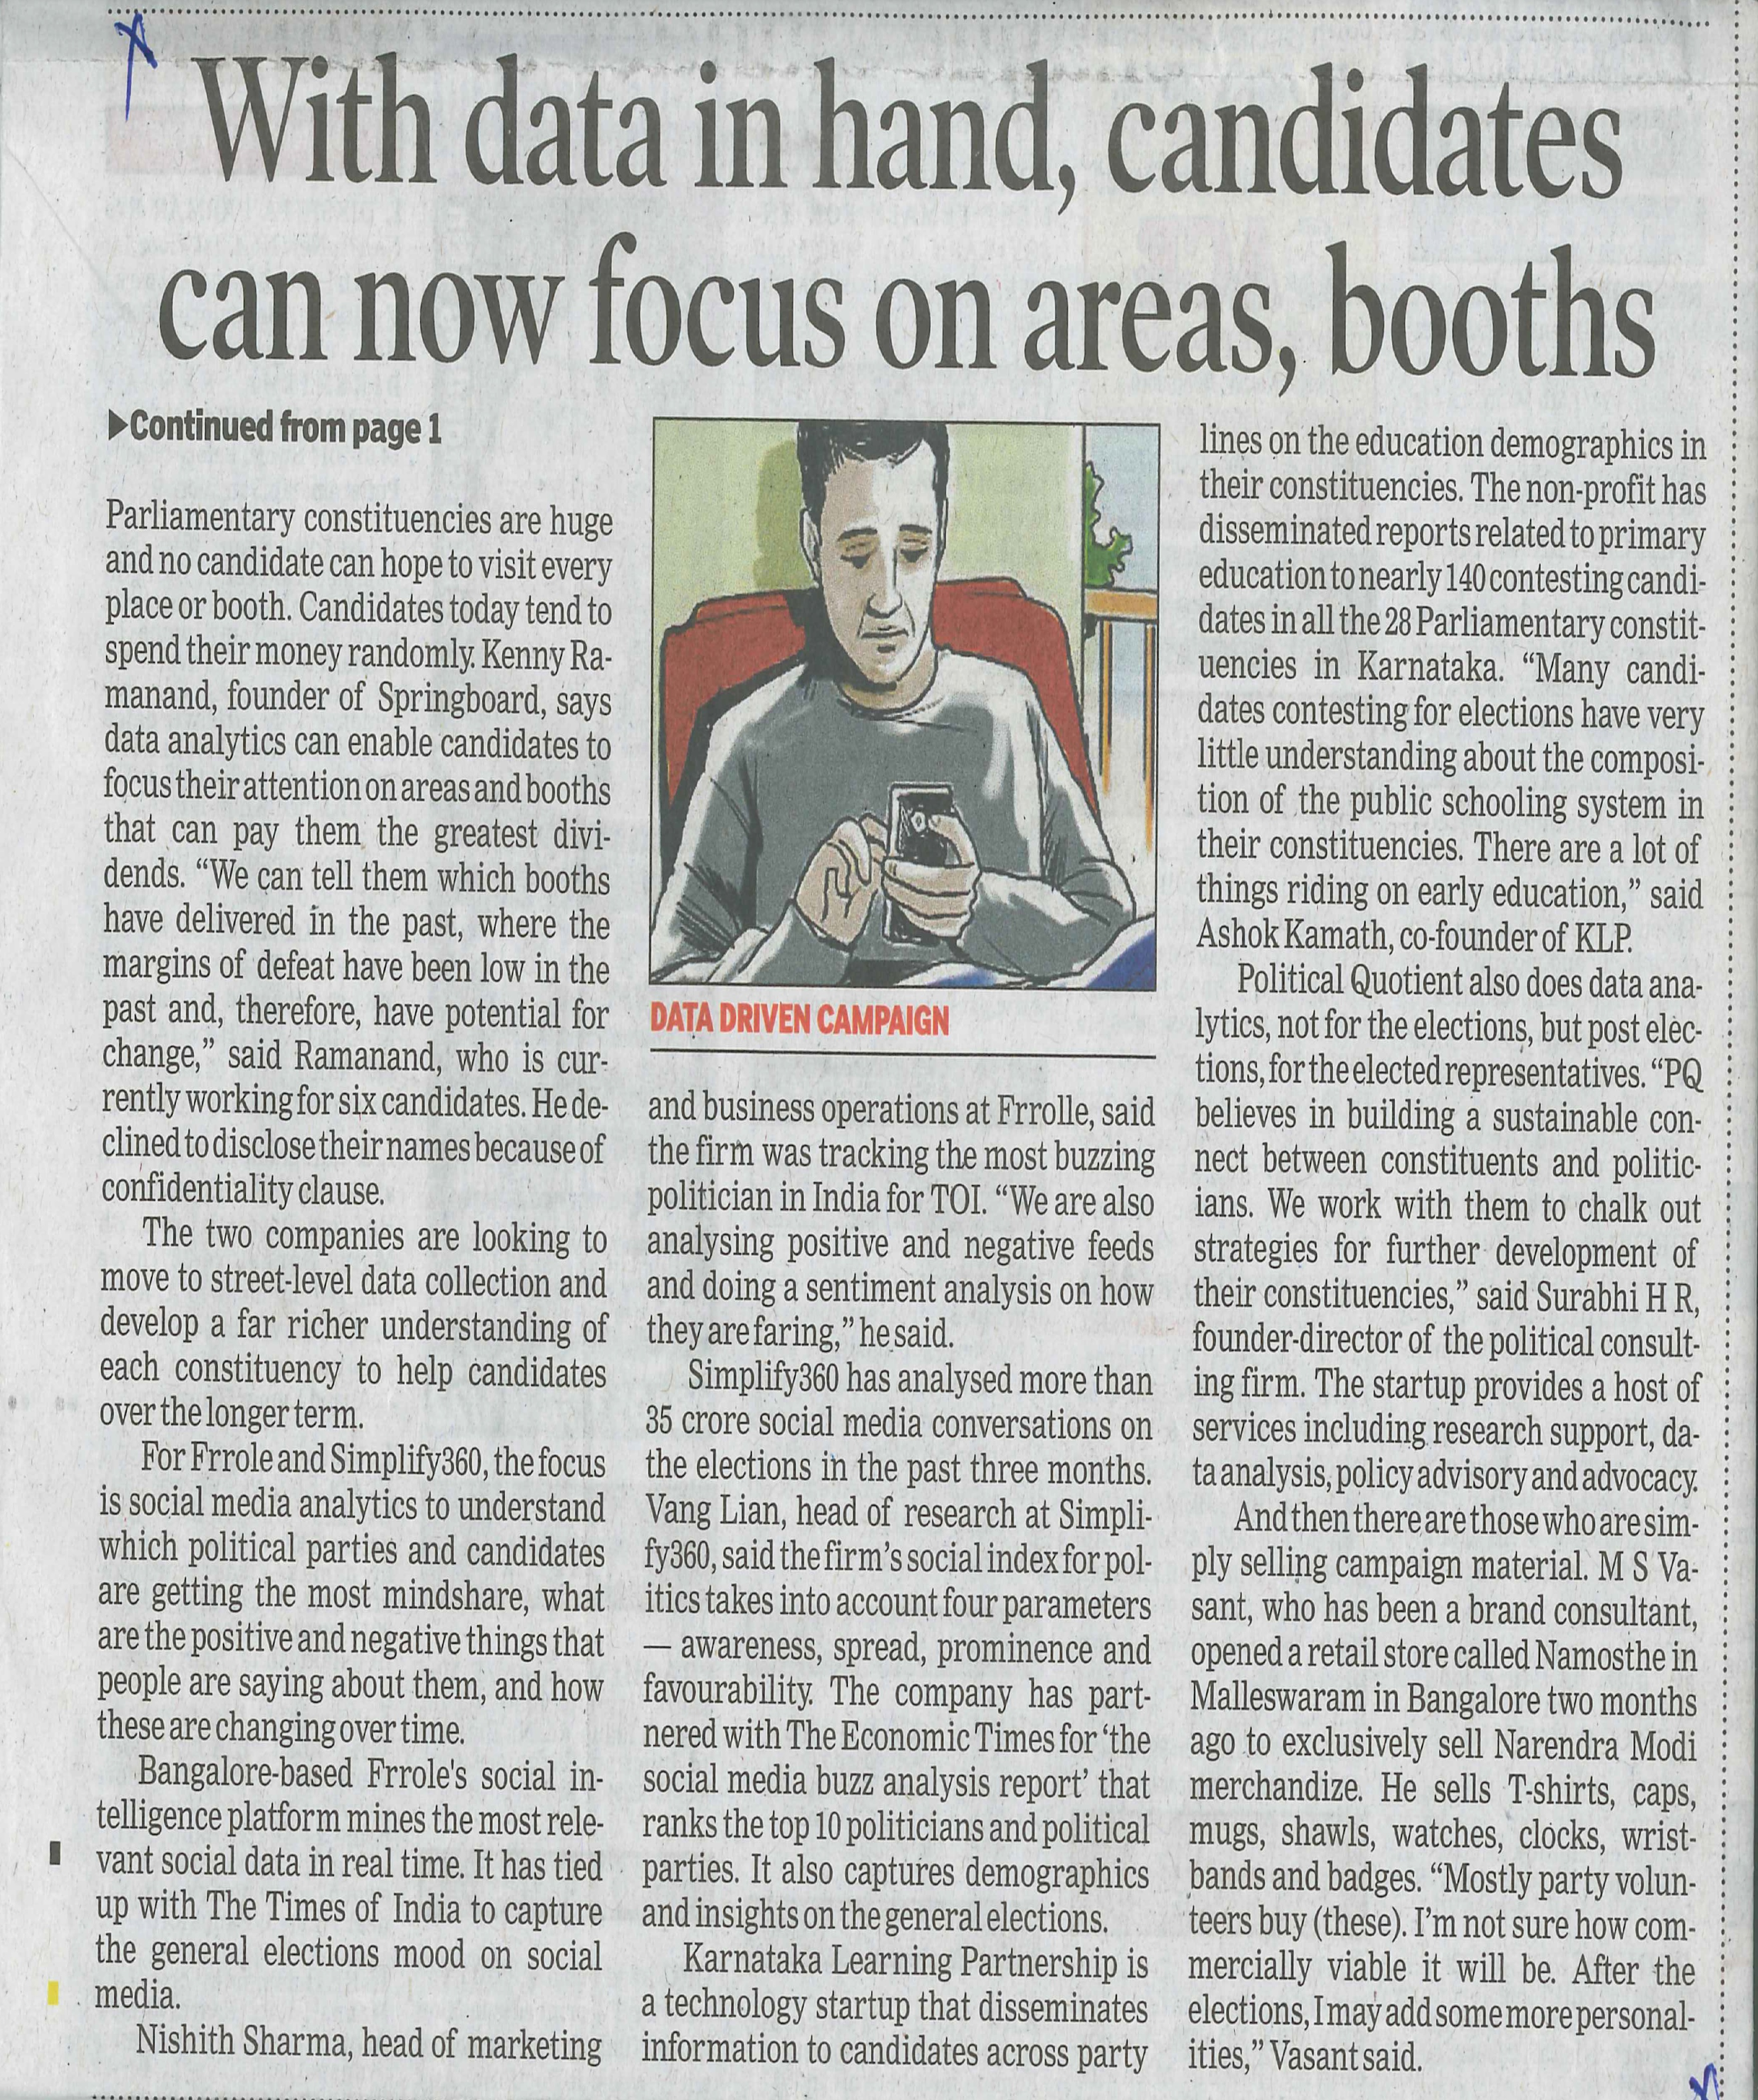 With data in hand candidates can now focus on areas booths